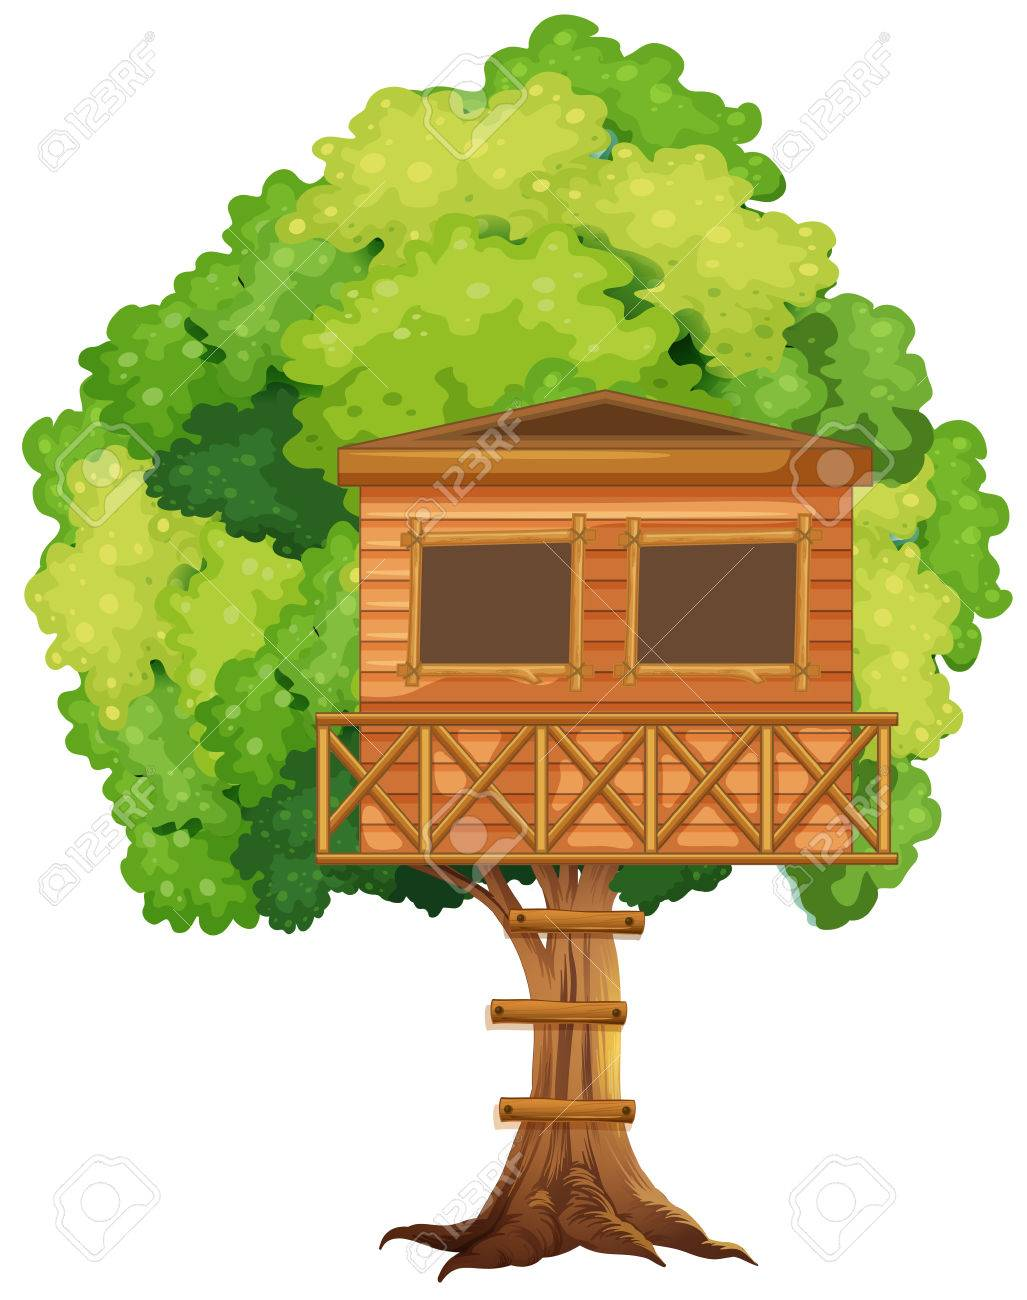 one treehouse in the tree illustration royalty free cliparts rh 123rf com Diaper Clip Art Magic Tree House